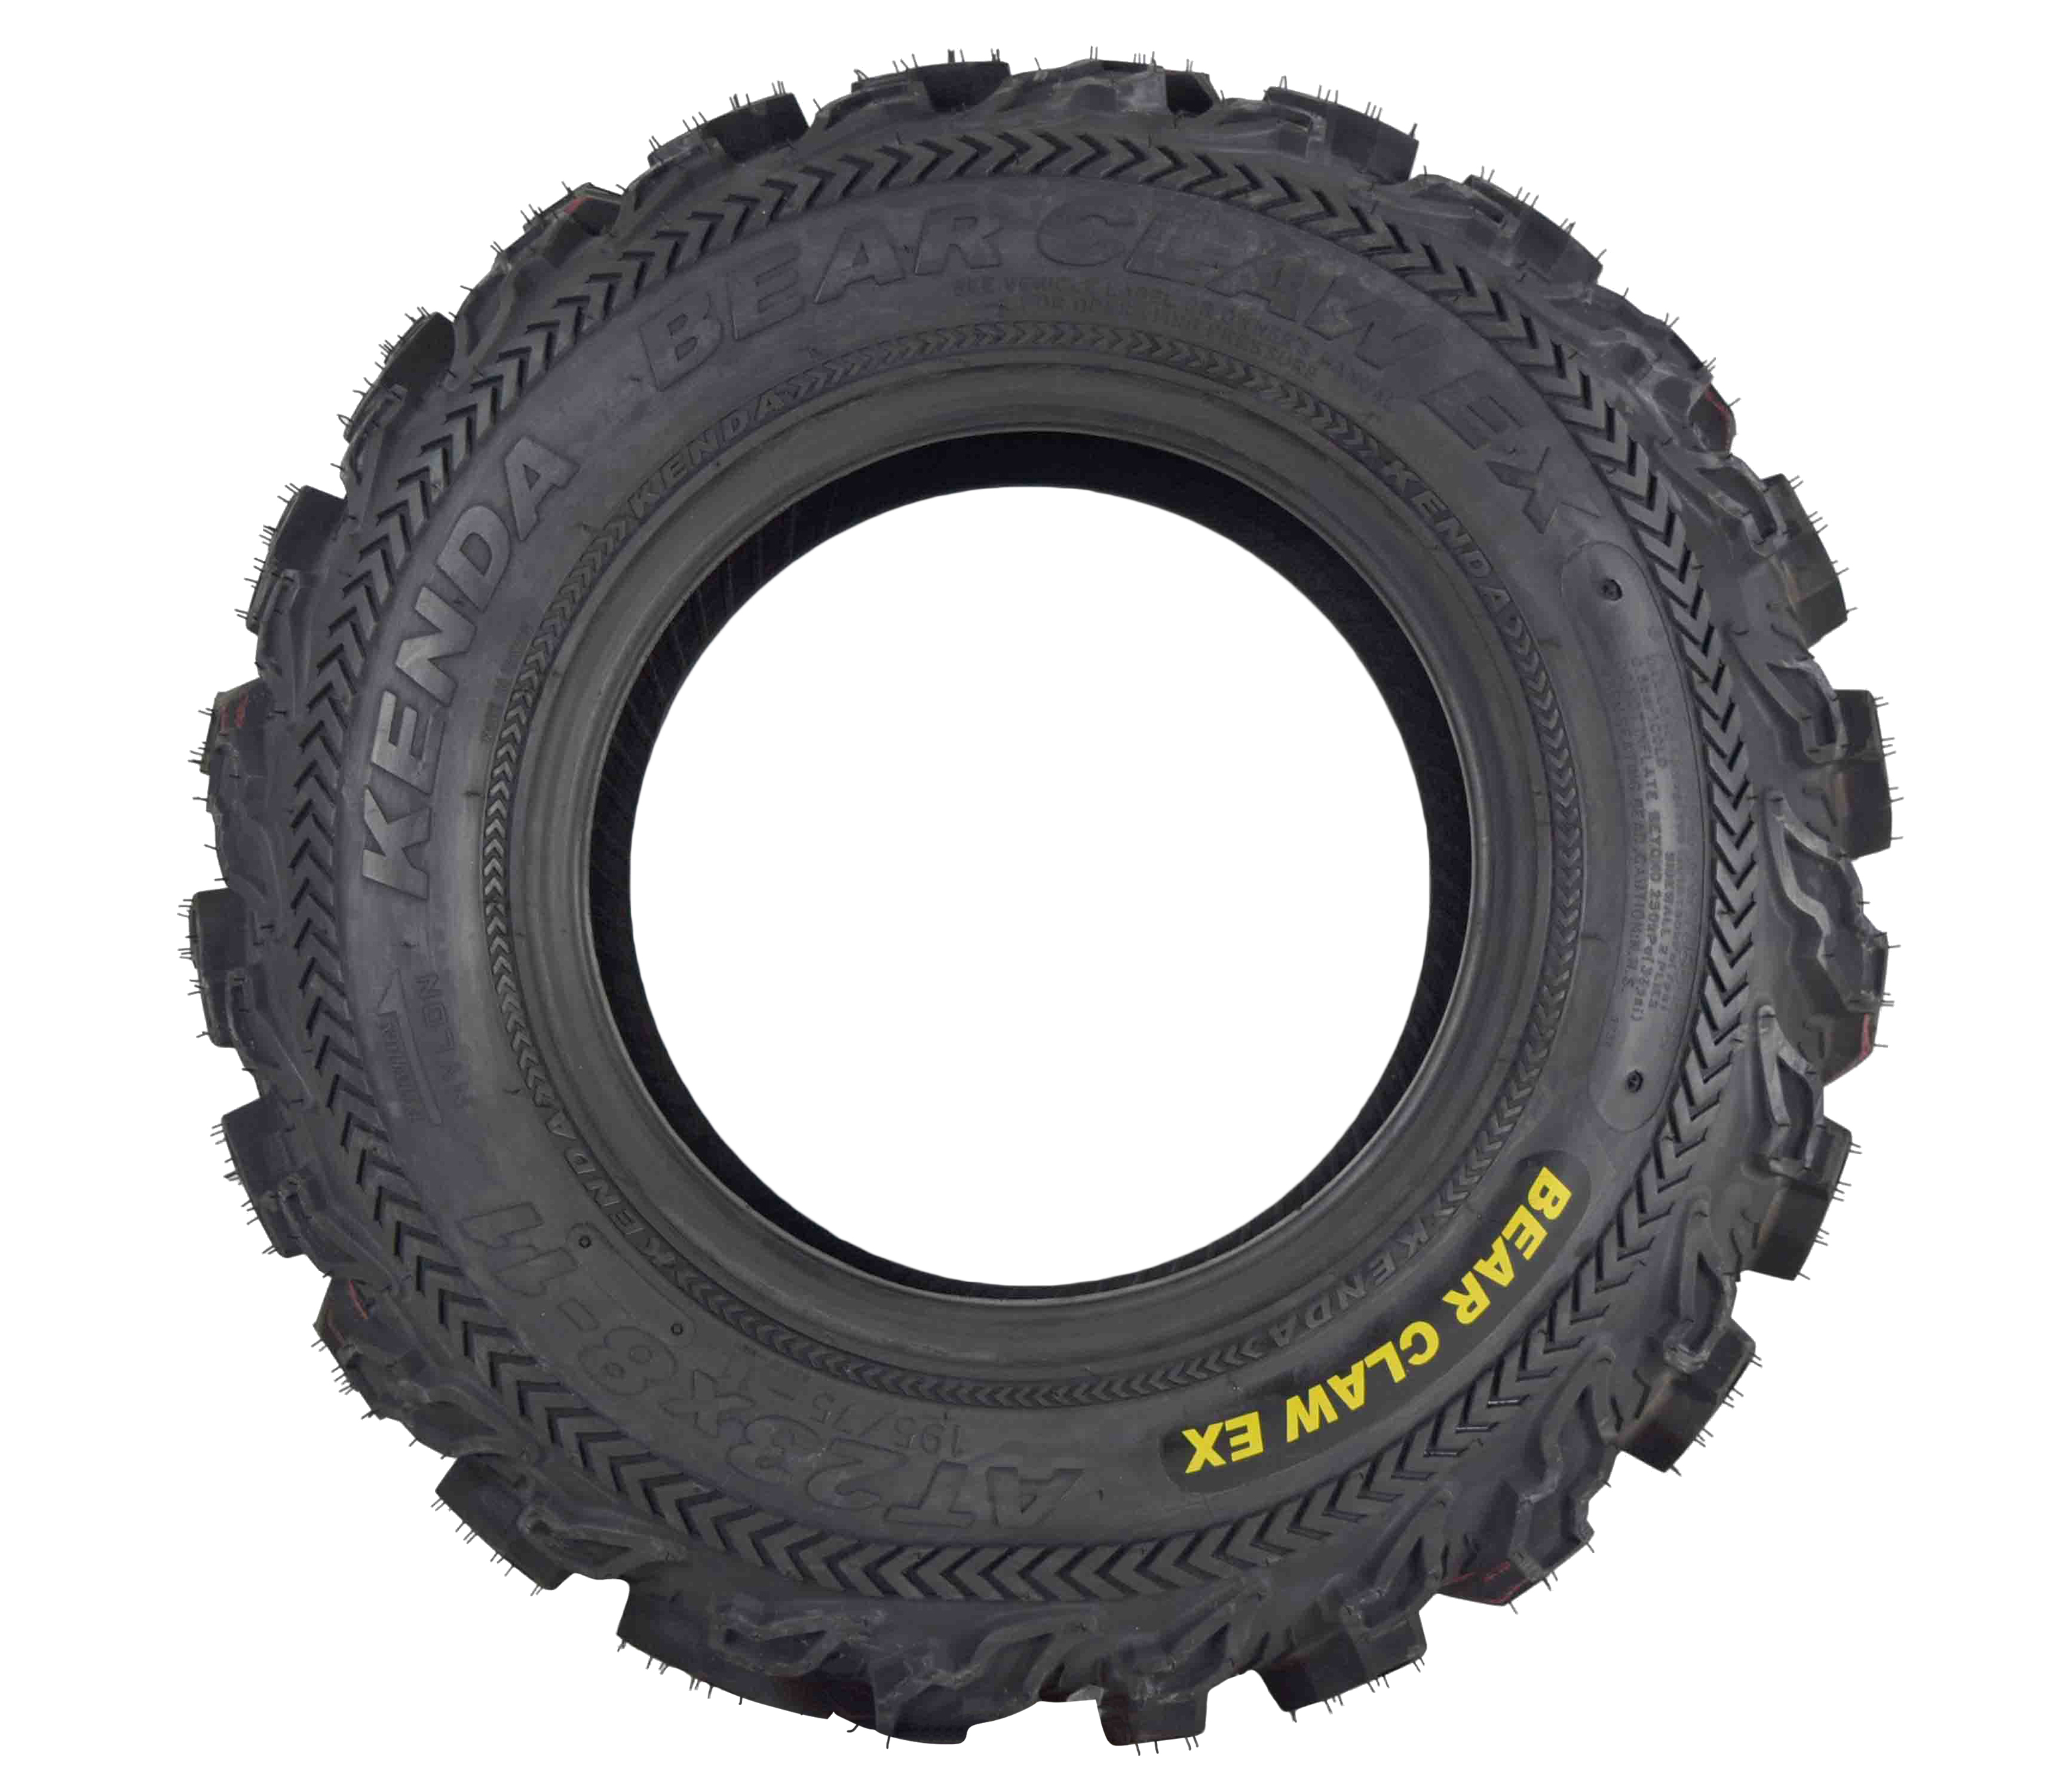 Kenda-Bear-Claw-EX-23x8-11-Front-ATV-6-PLY-Tire-Bearclaw-23x8x11-Single-Tire-image-2